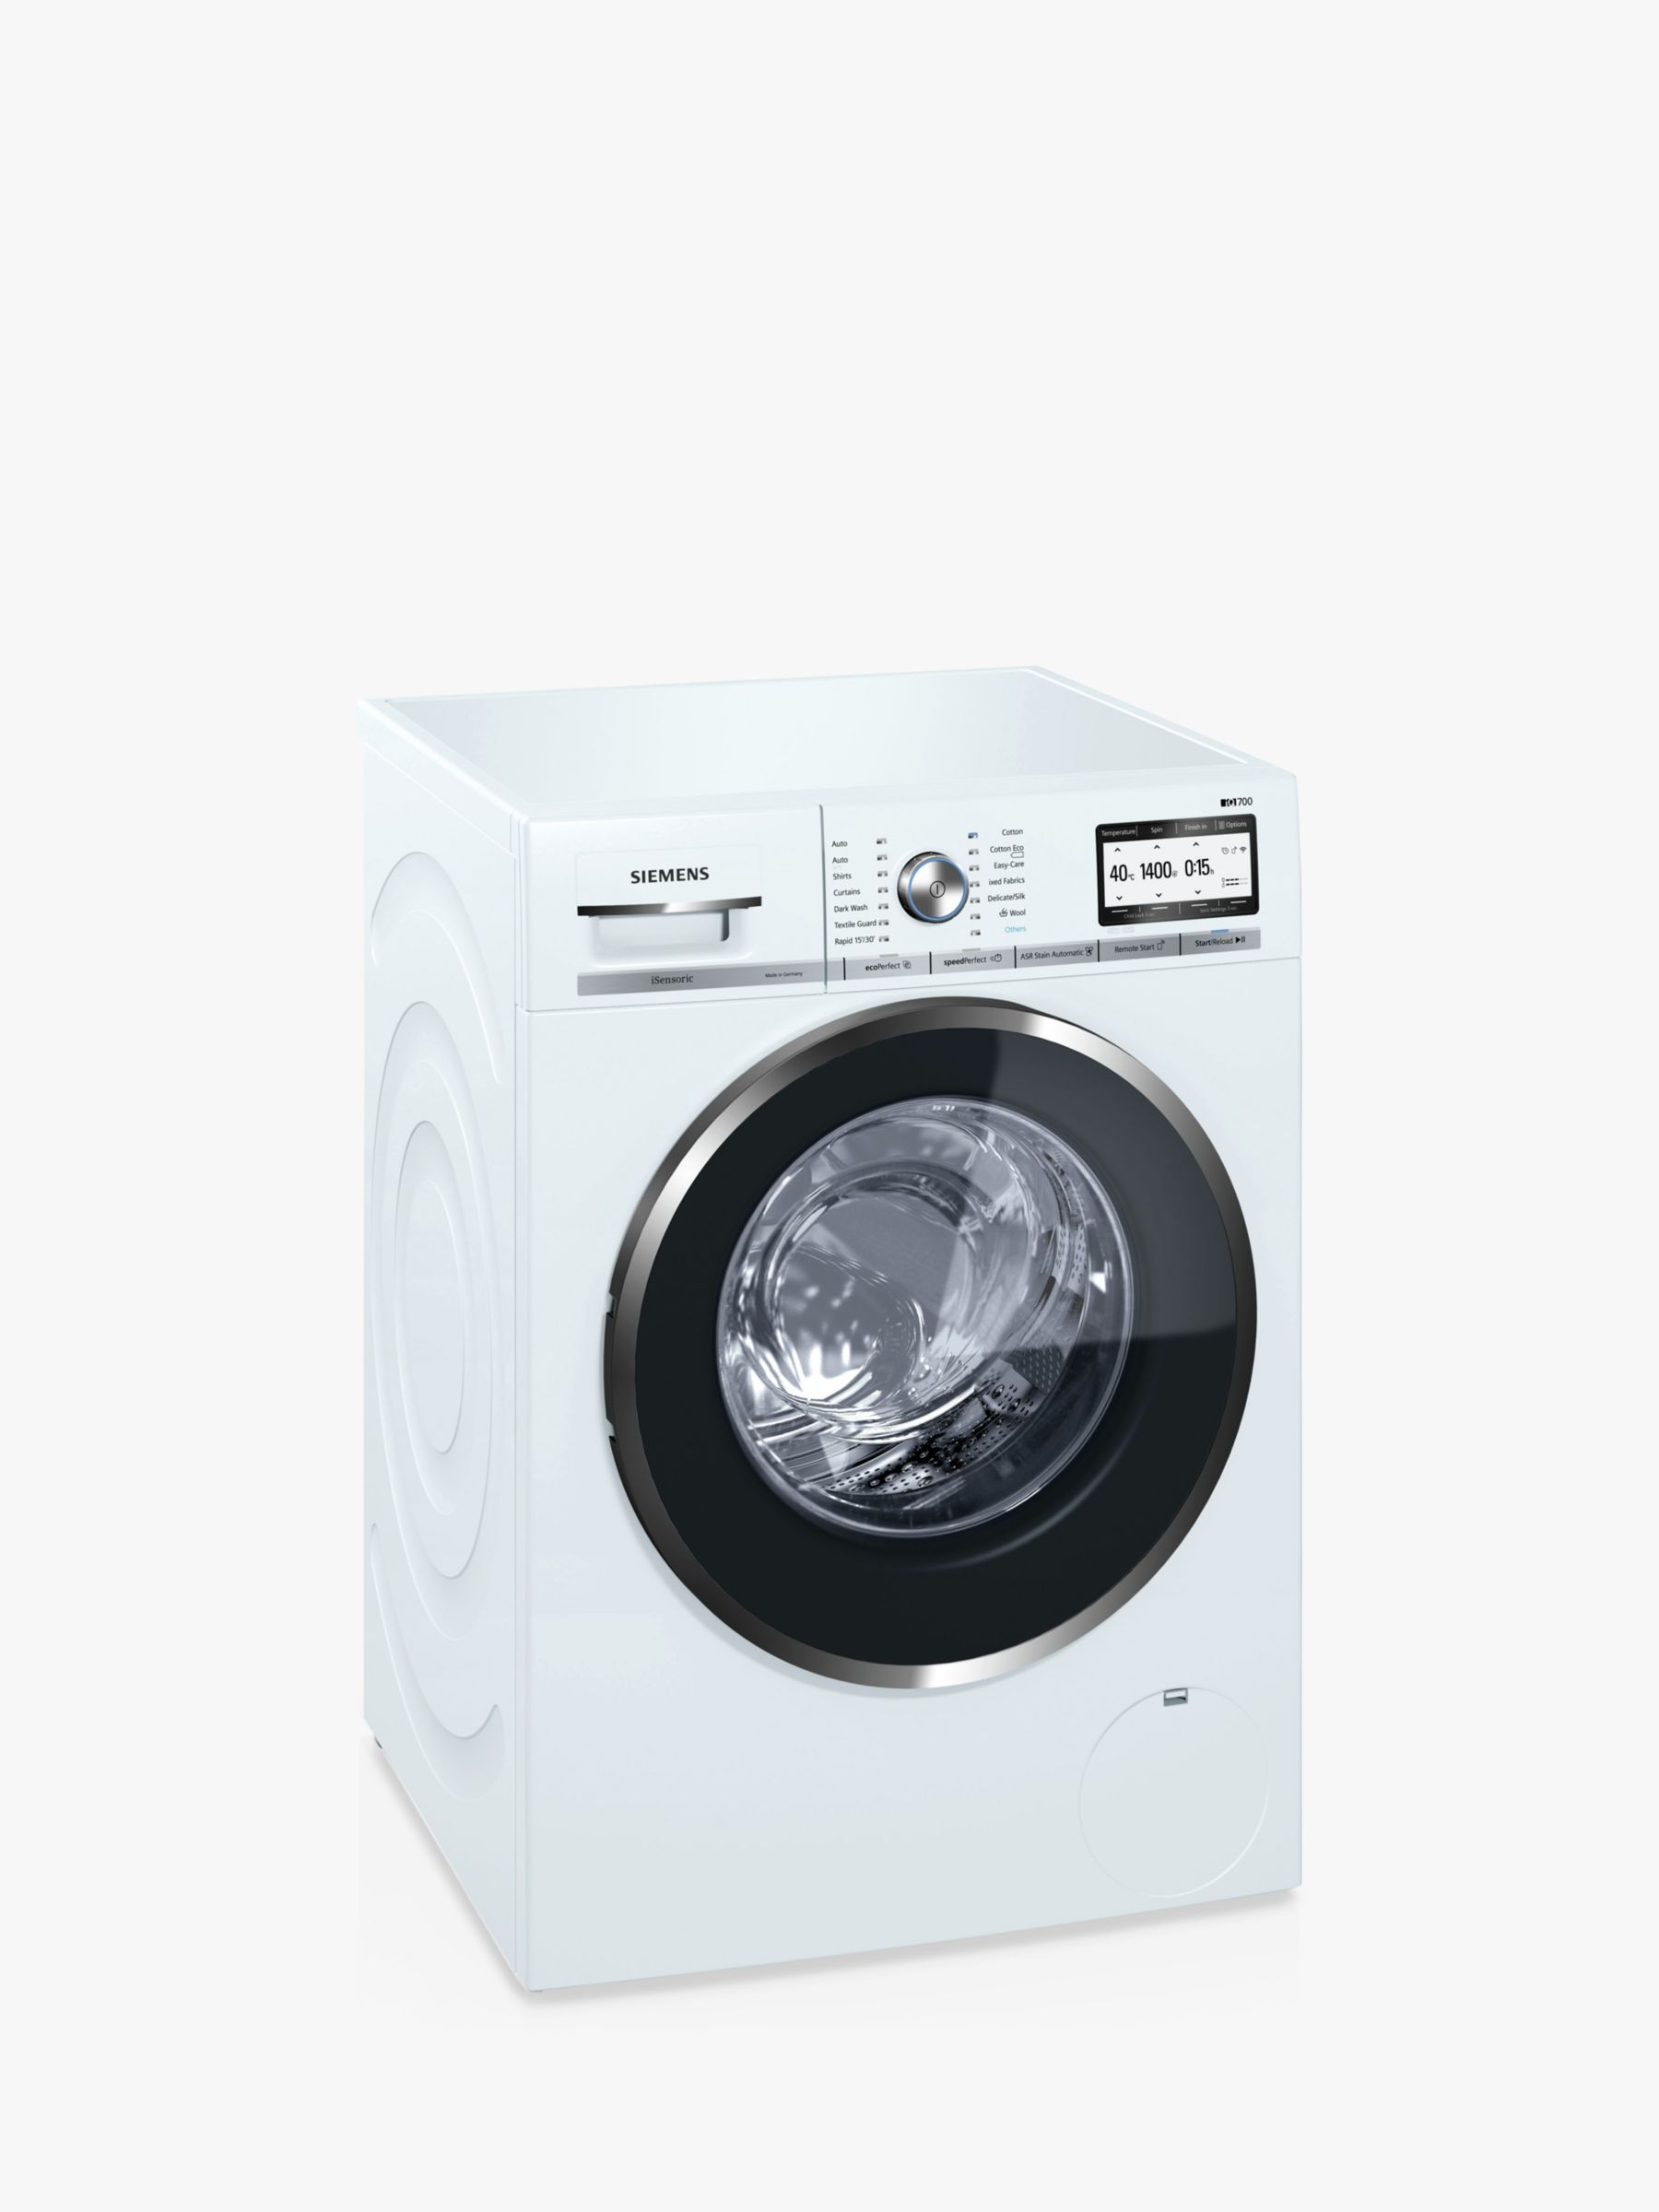 Siemens Siemens WM14YH79GB Freestanding Washing Machine with Home Connect, 9kg Load, A+++ Energy Rating, 1400rpm Spin, White